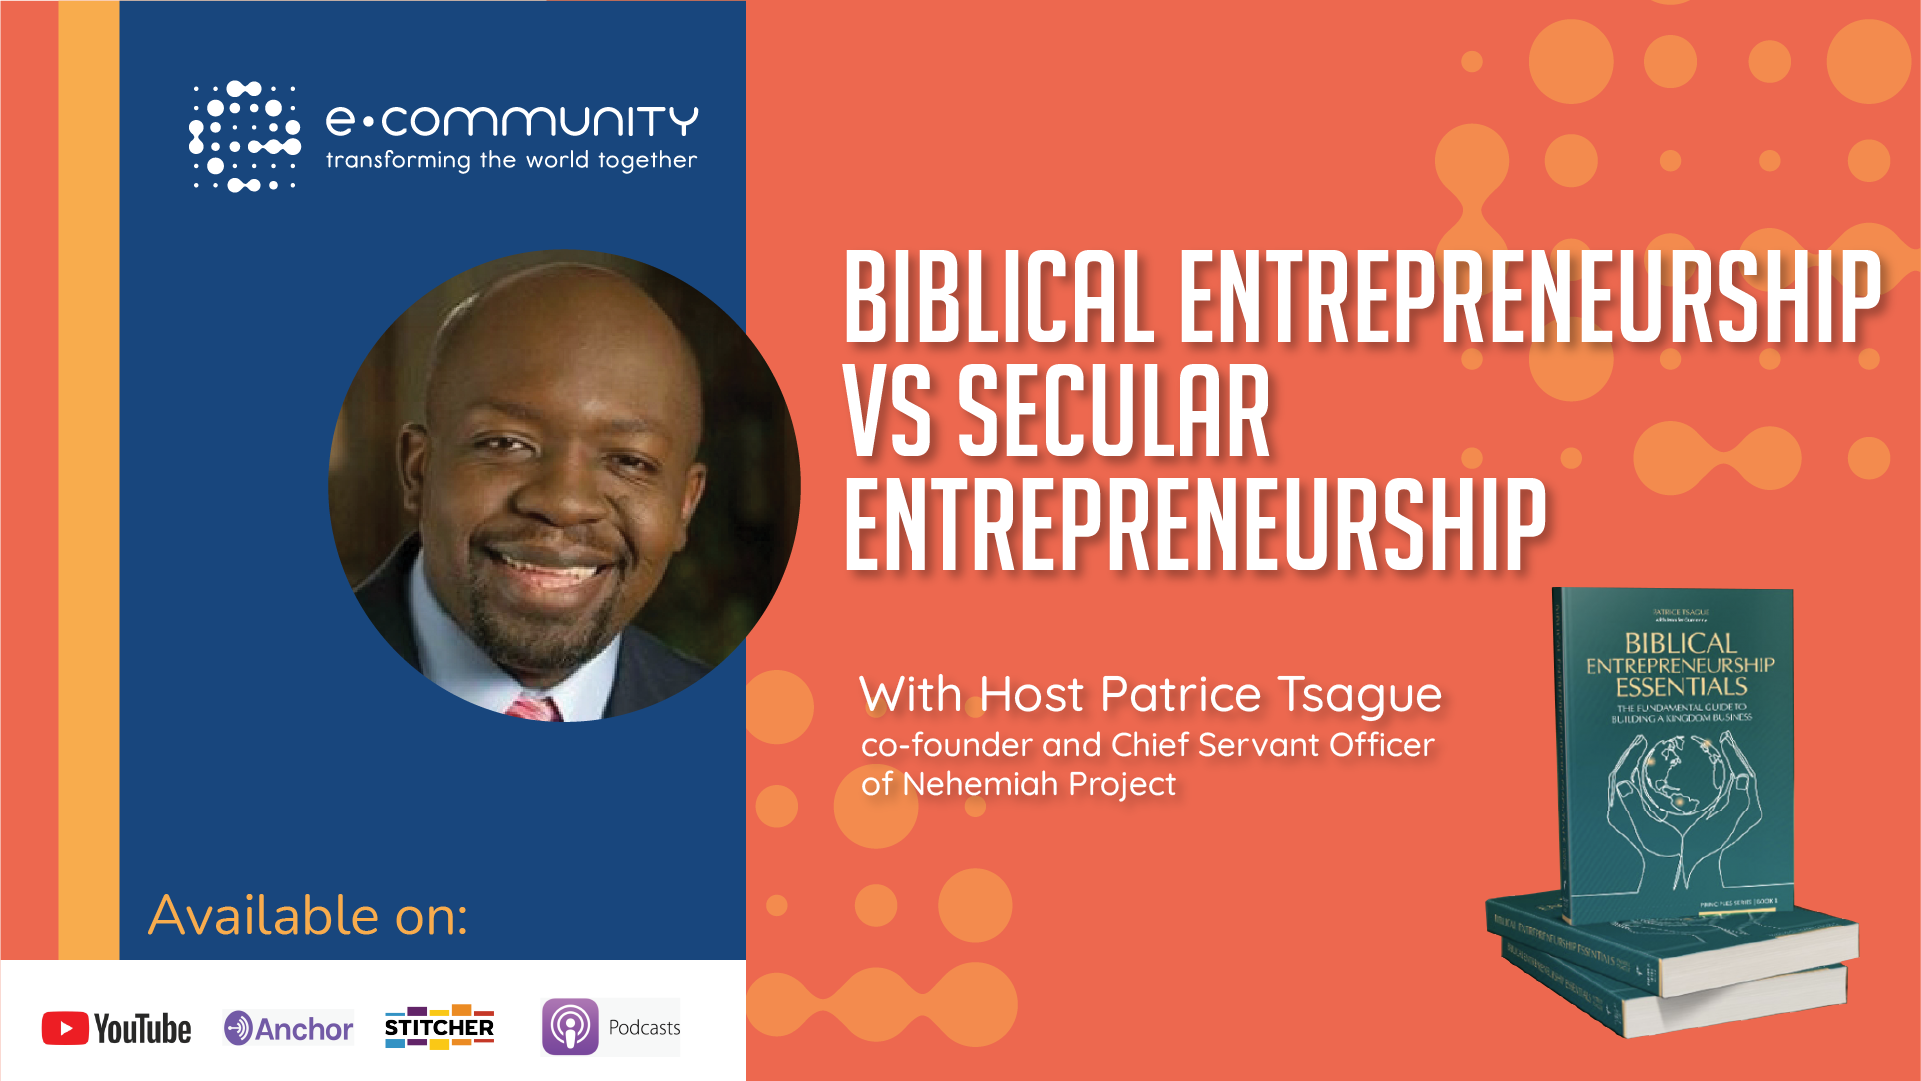 Biblical Entrepreneurship Vs Secular Entrepreneurship